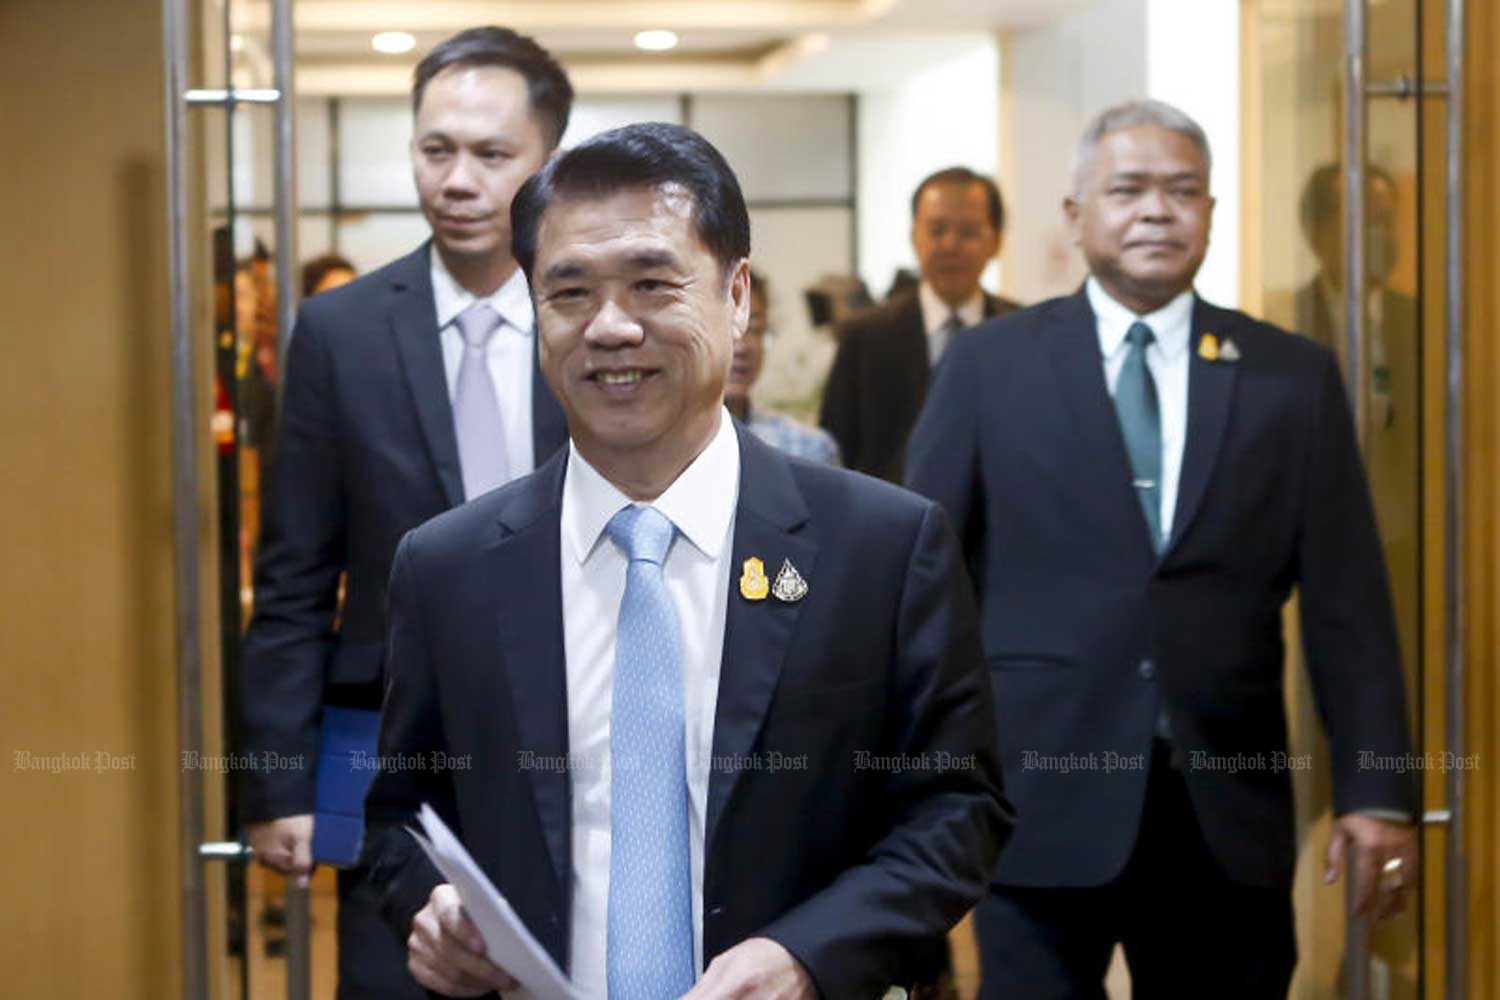 Industry Minister Suriya Juangroongruangkit walks to a press conference at his ministry in Bangkok on Wednesday to announce that the new National Committee on Hazardous Substances has countermanded the total ban on three farm chemicals due to take effect on Sunday. (Photo by Pattarapong Chatpattarasill)